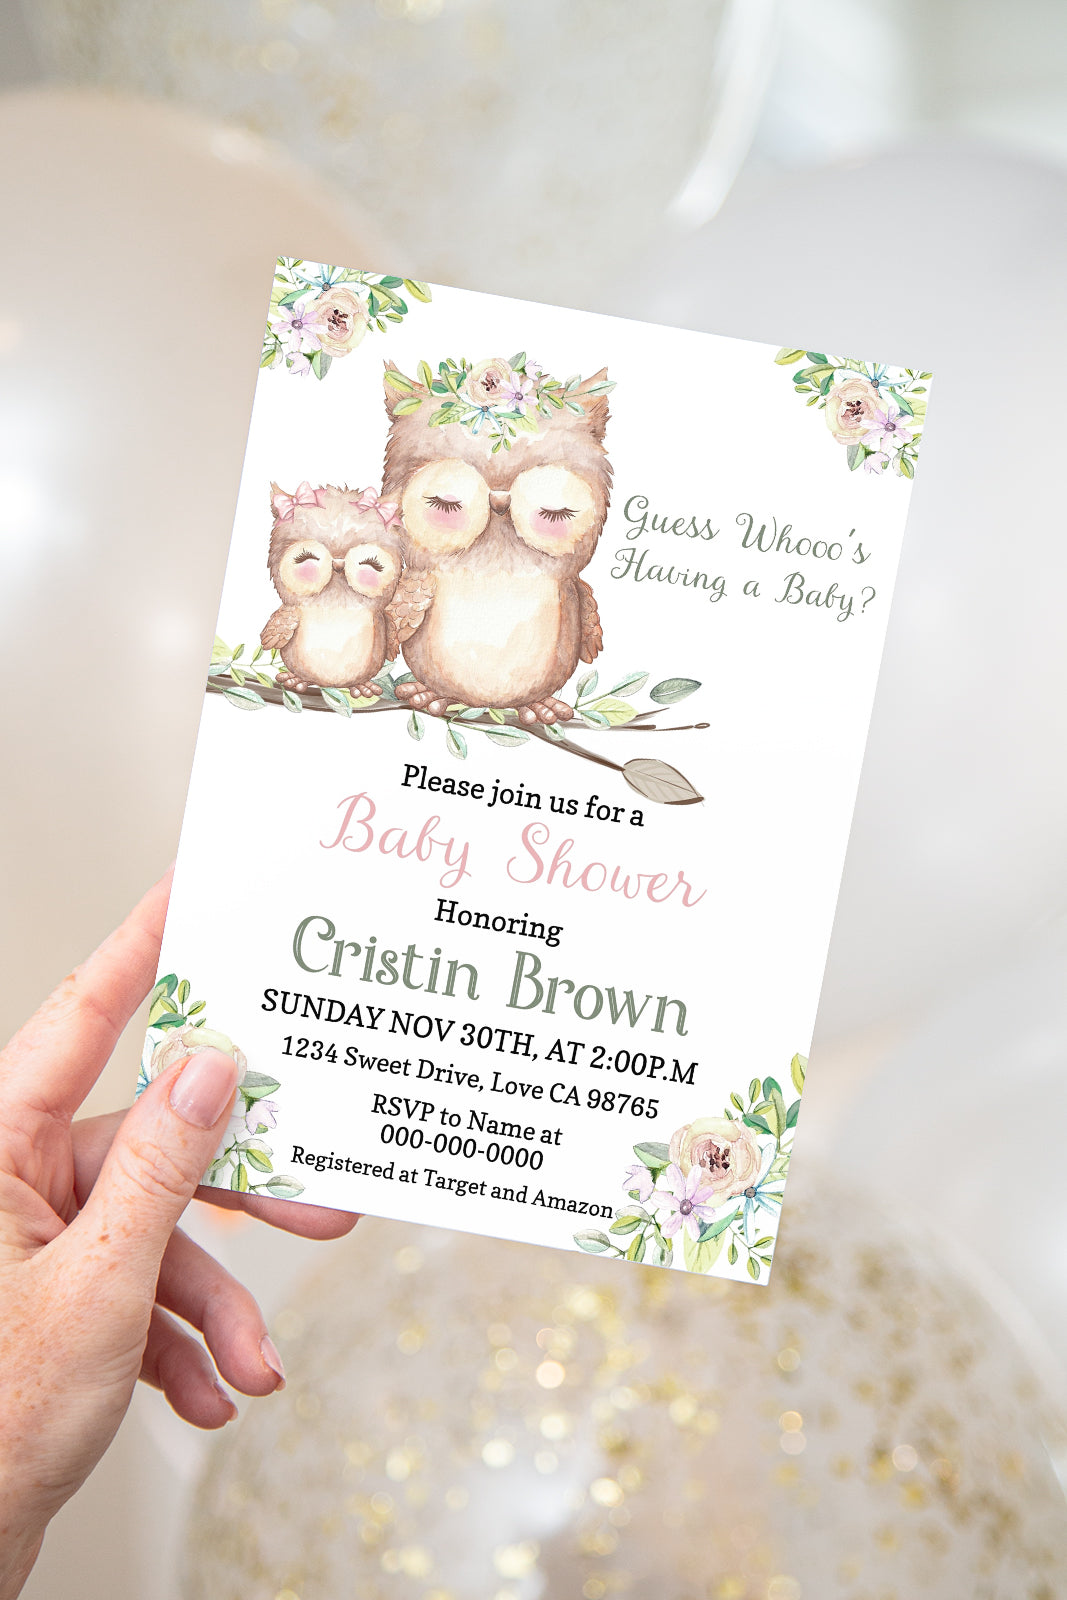 Guess Whoo's Having A Baby Invitation | Editable Owl Girl Baby Shower Invite - 78A2